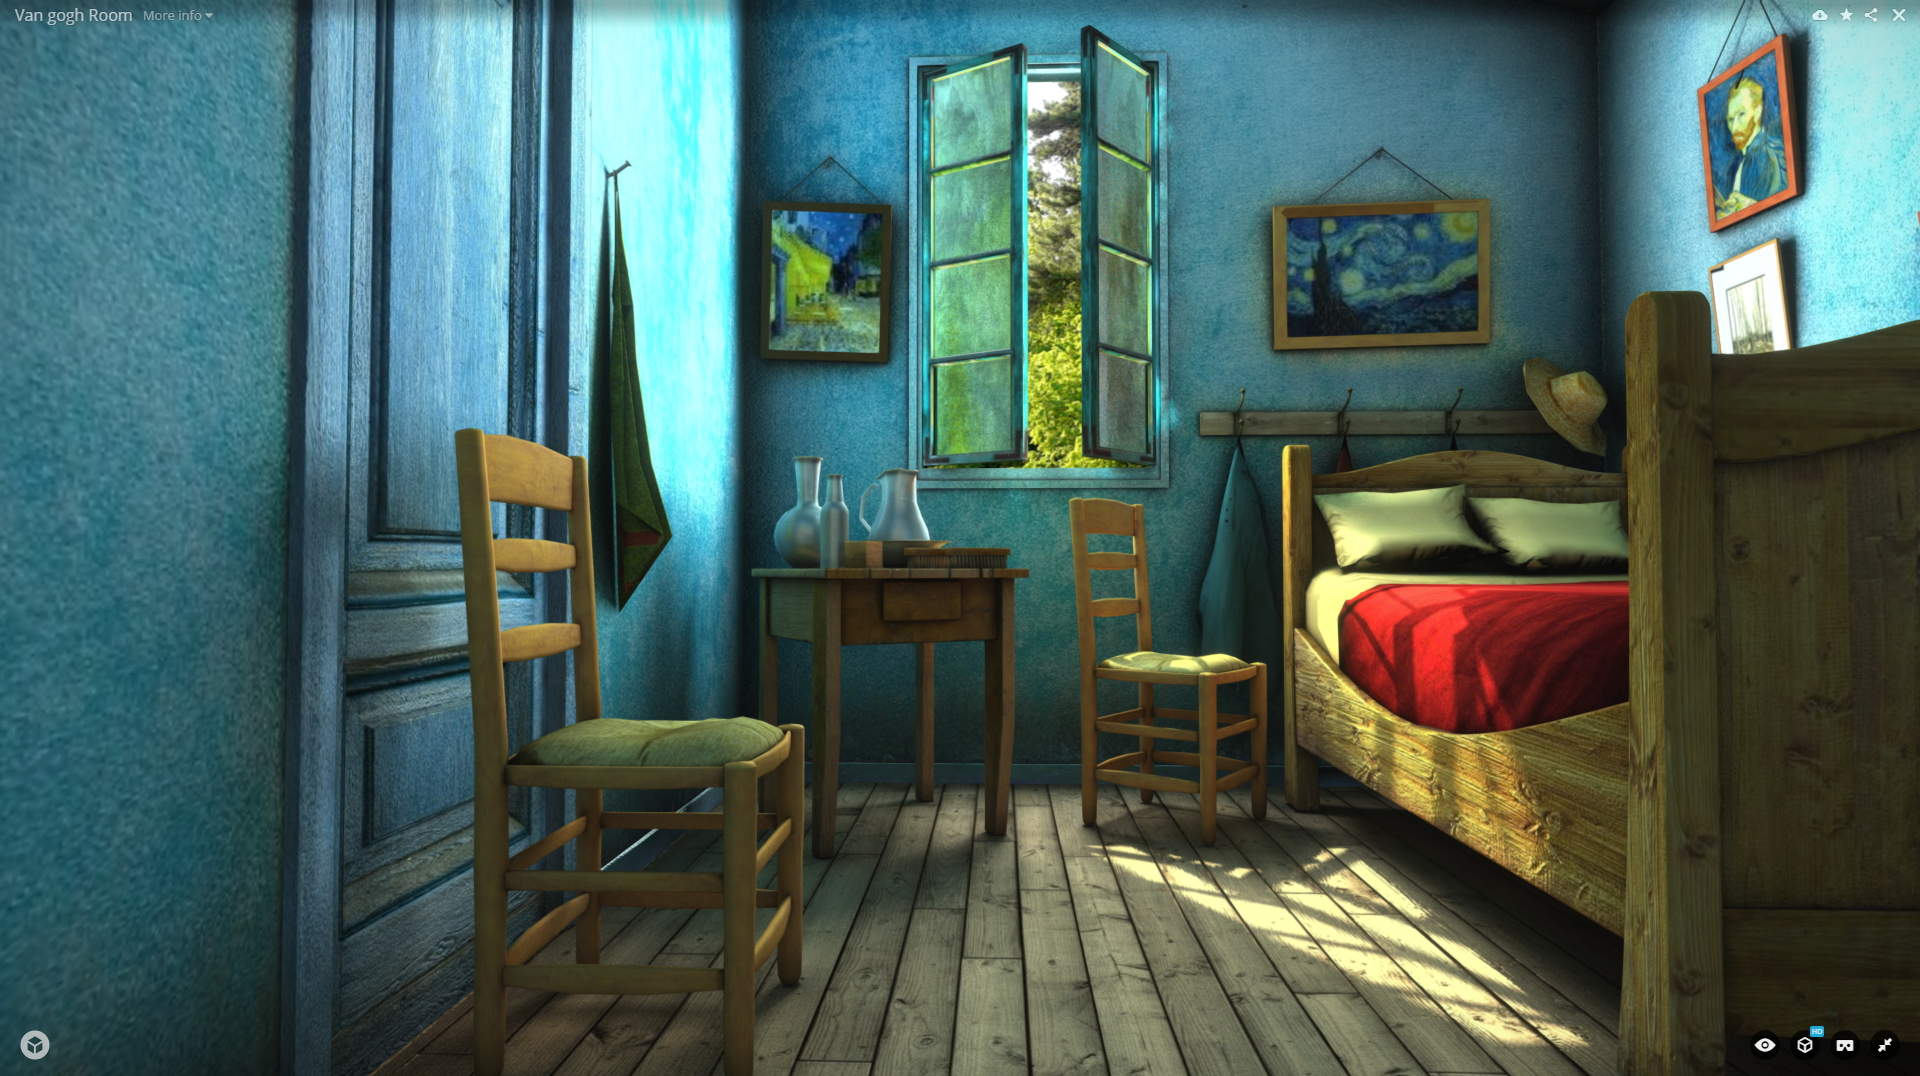 vangogh-room